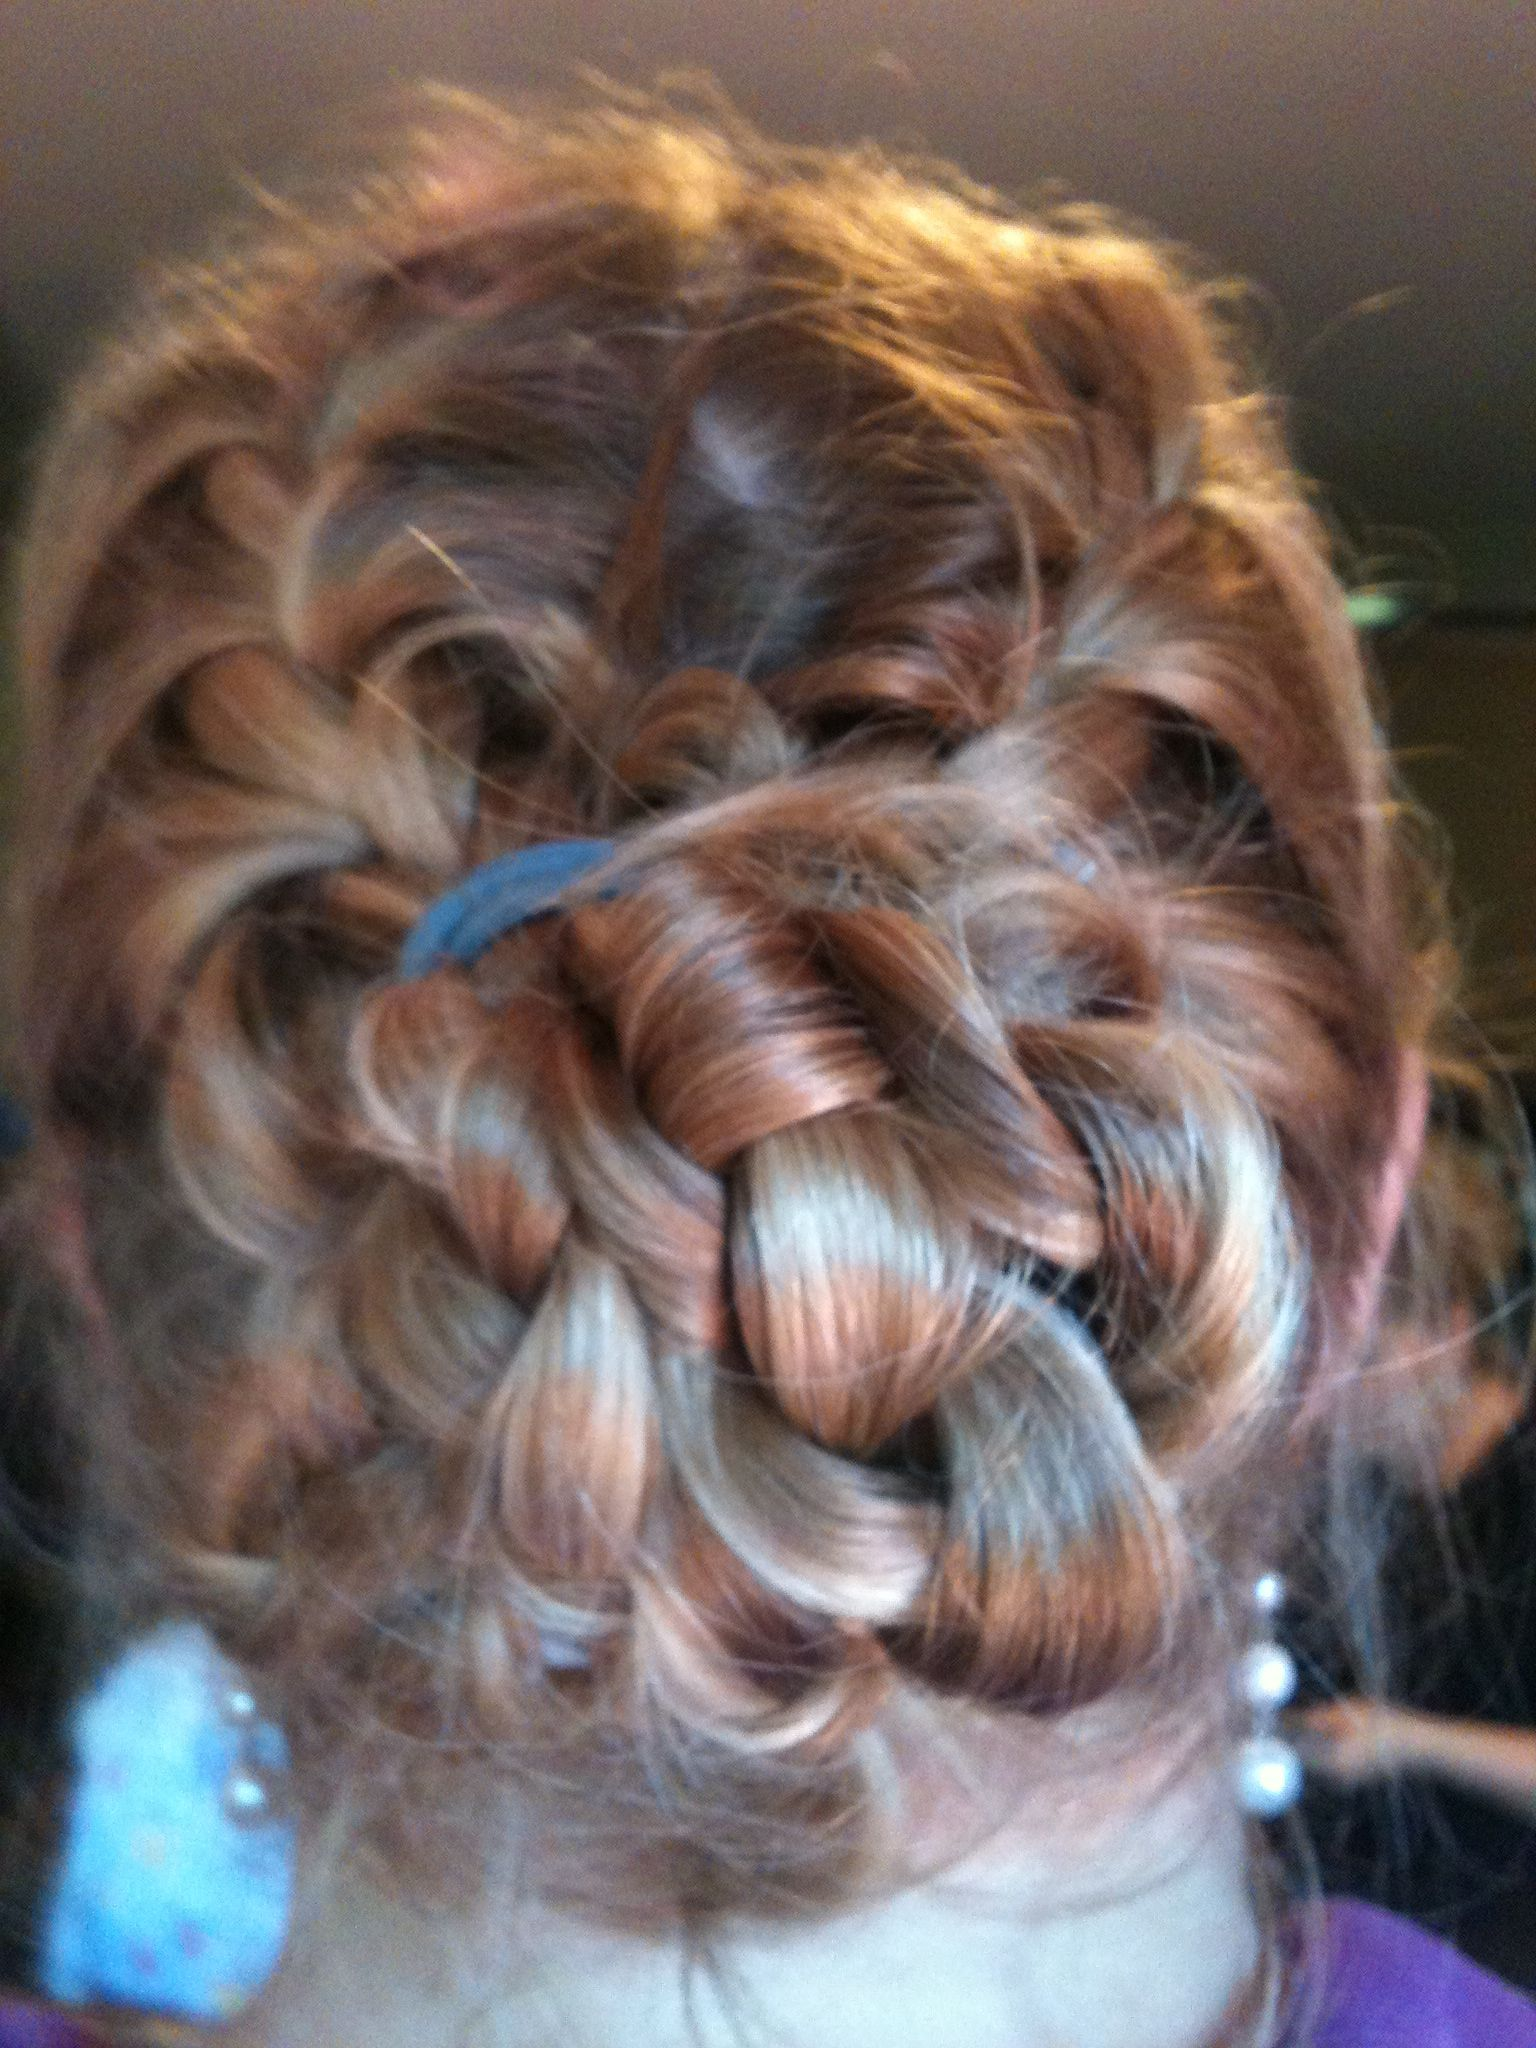 My hair yesterday french braids coming together into one braid